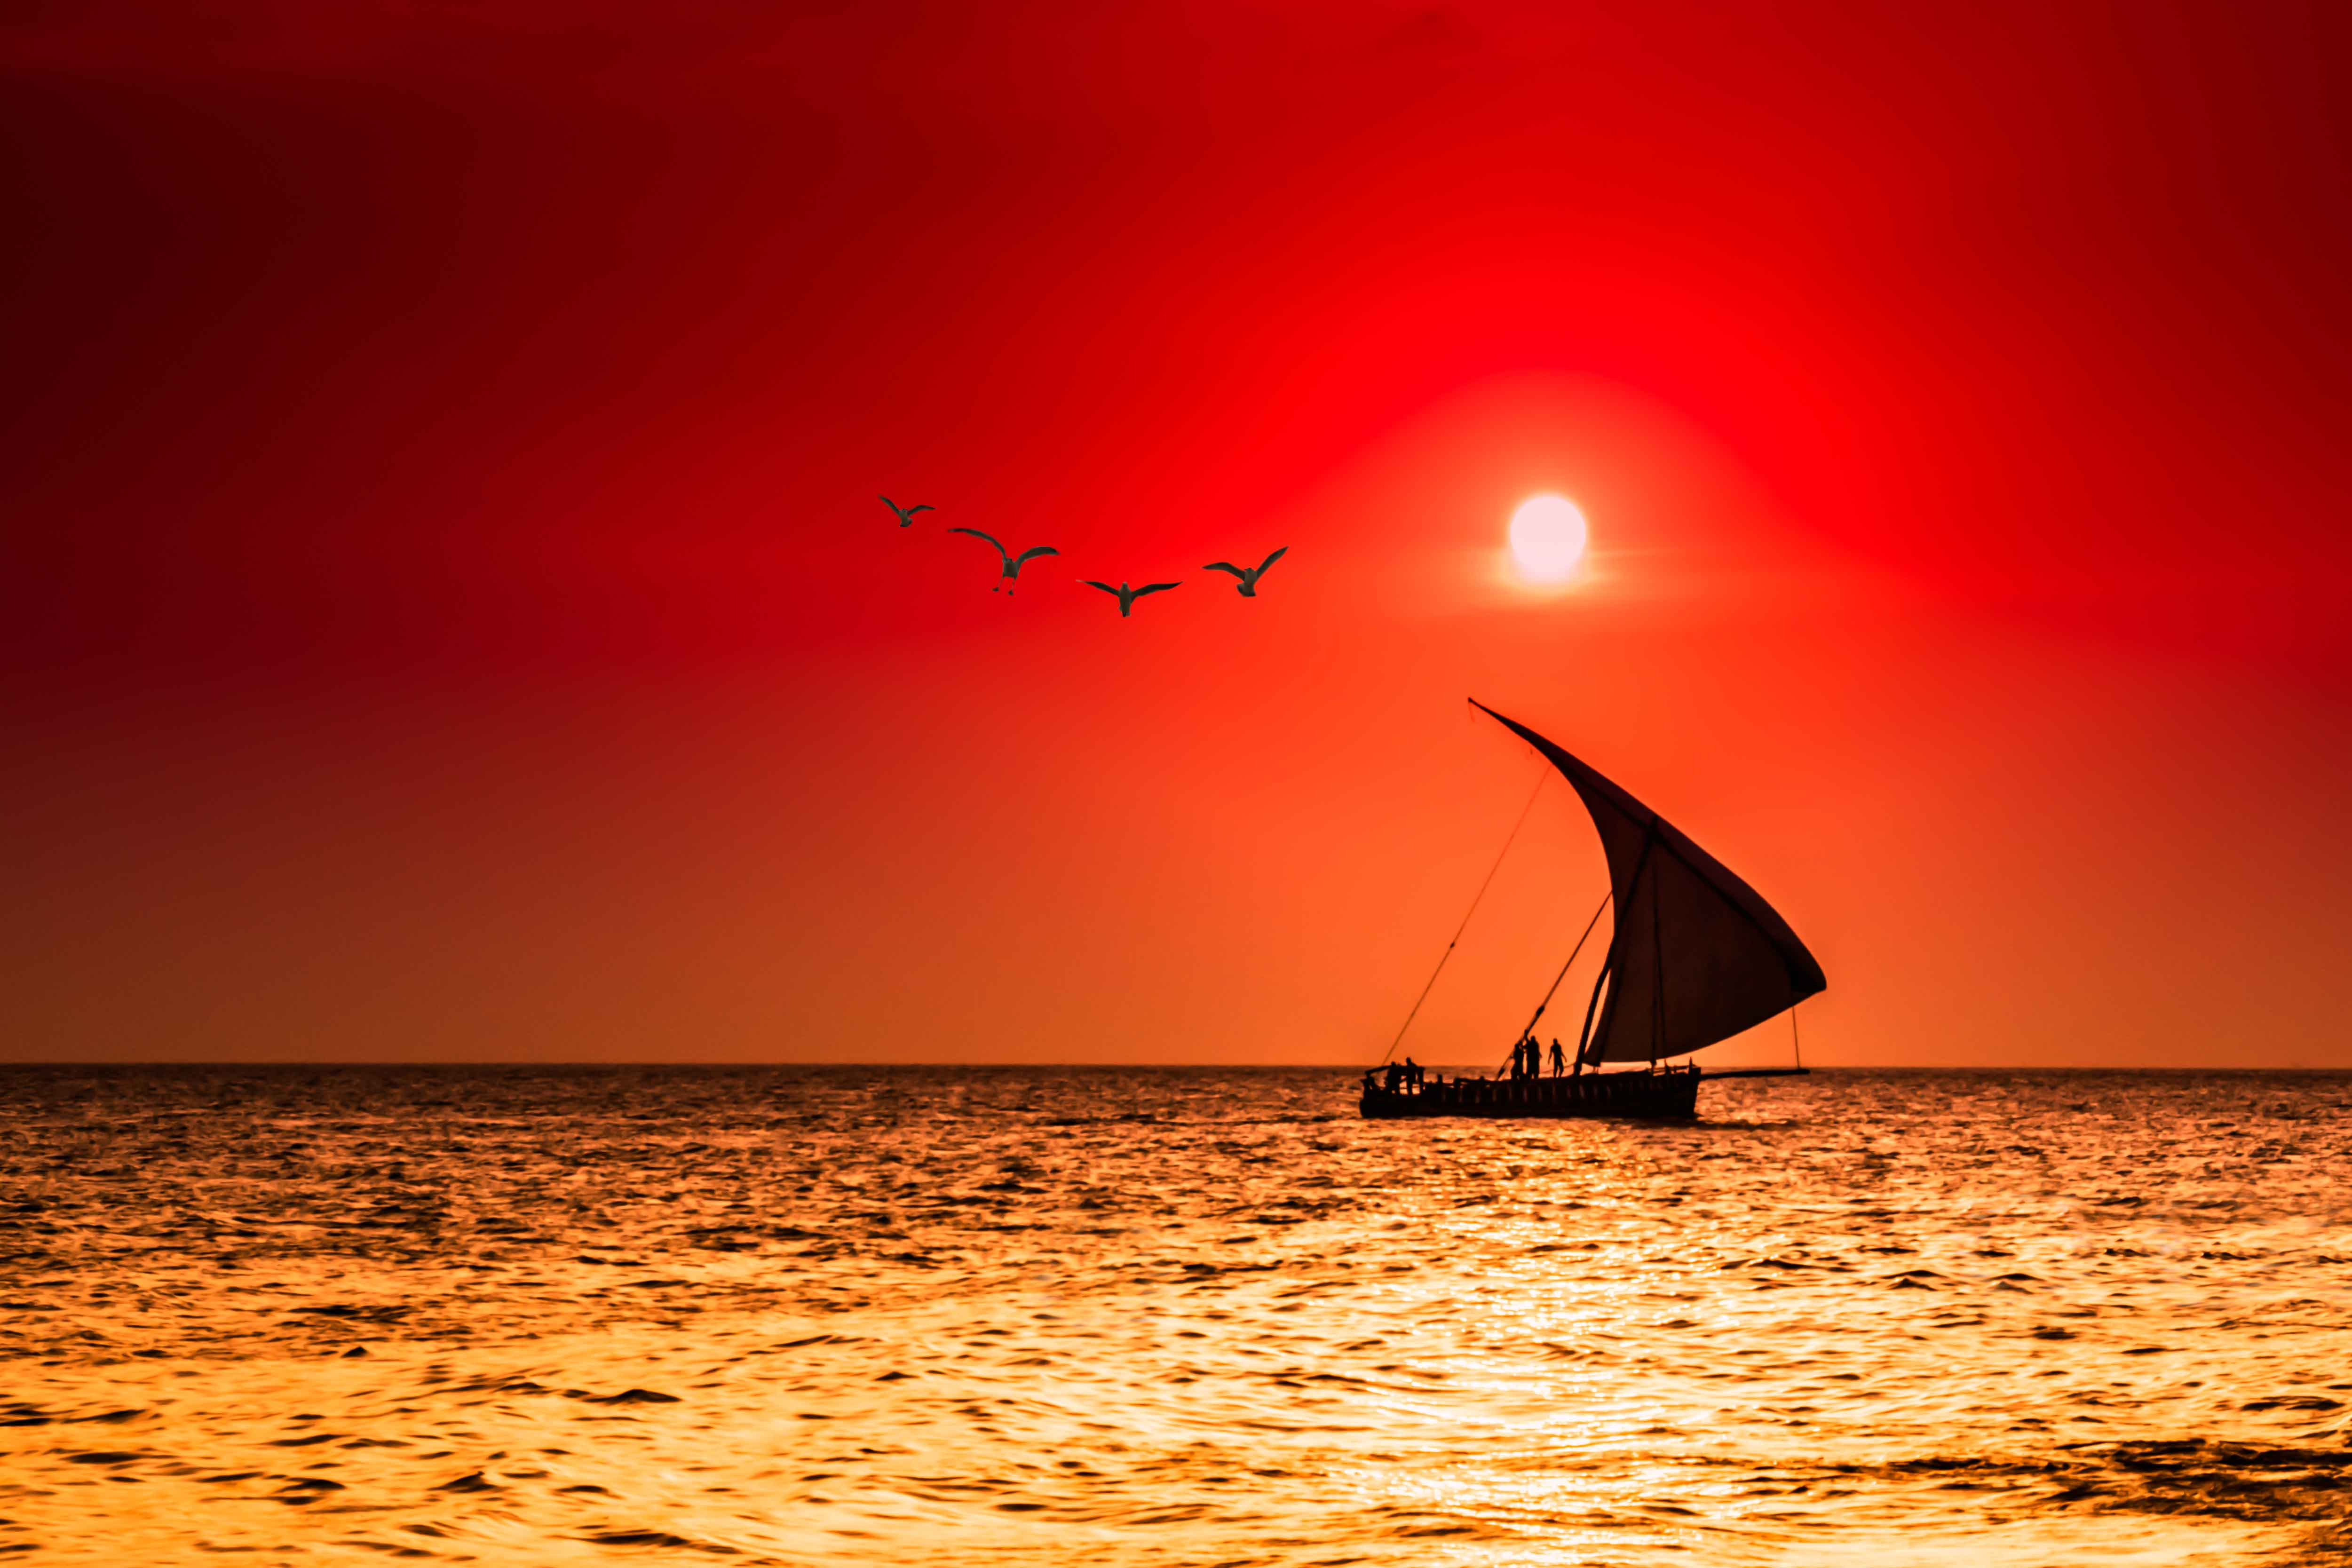 A traditional dhow sailing through calm waters underneath a red sunset